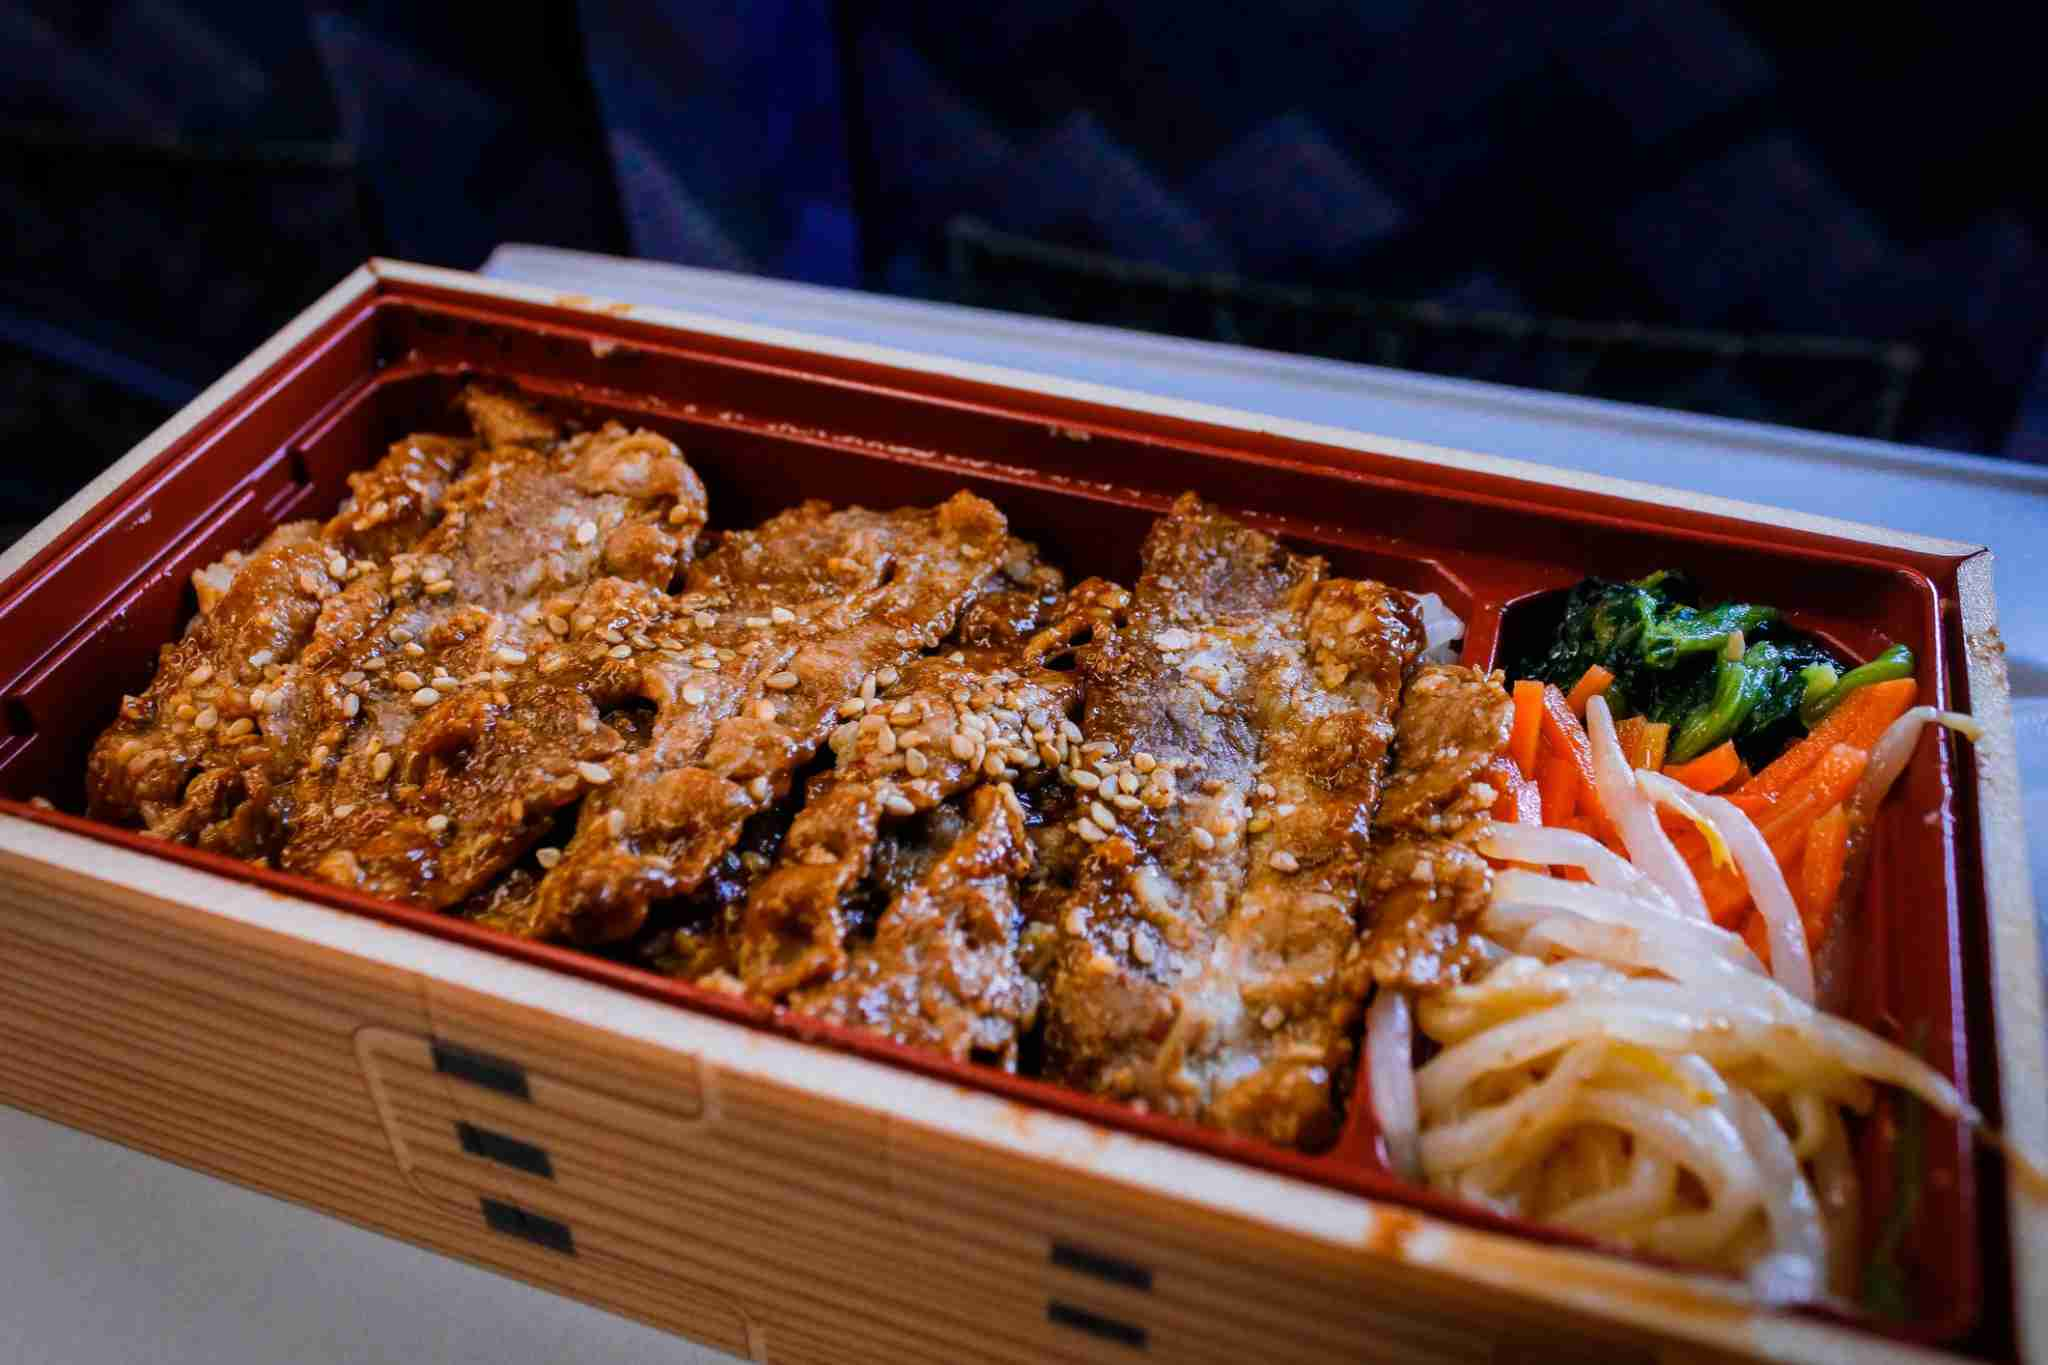 You can buy bento boxes, sushi, and beer on board or at any train station. Image by Suphat Bhandharangsri Photography/Getty Images.